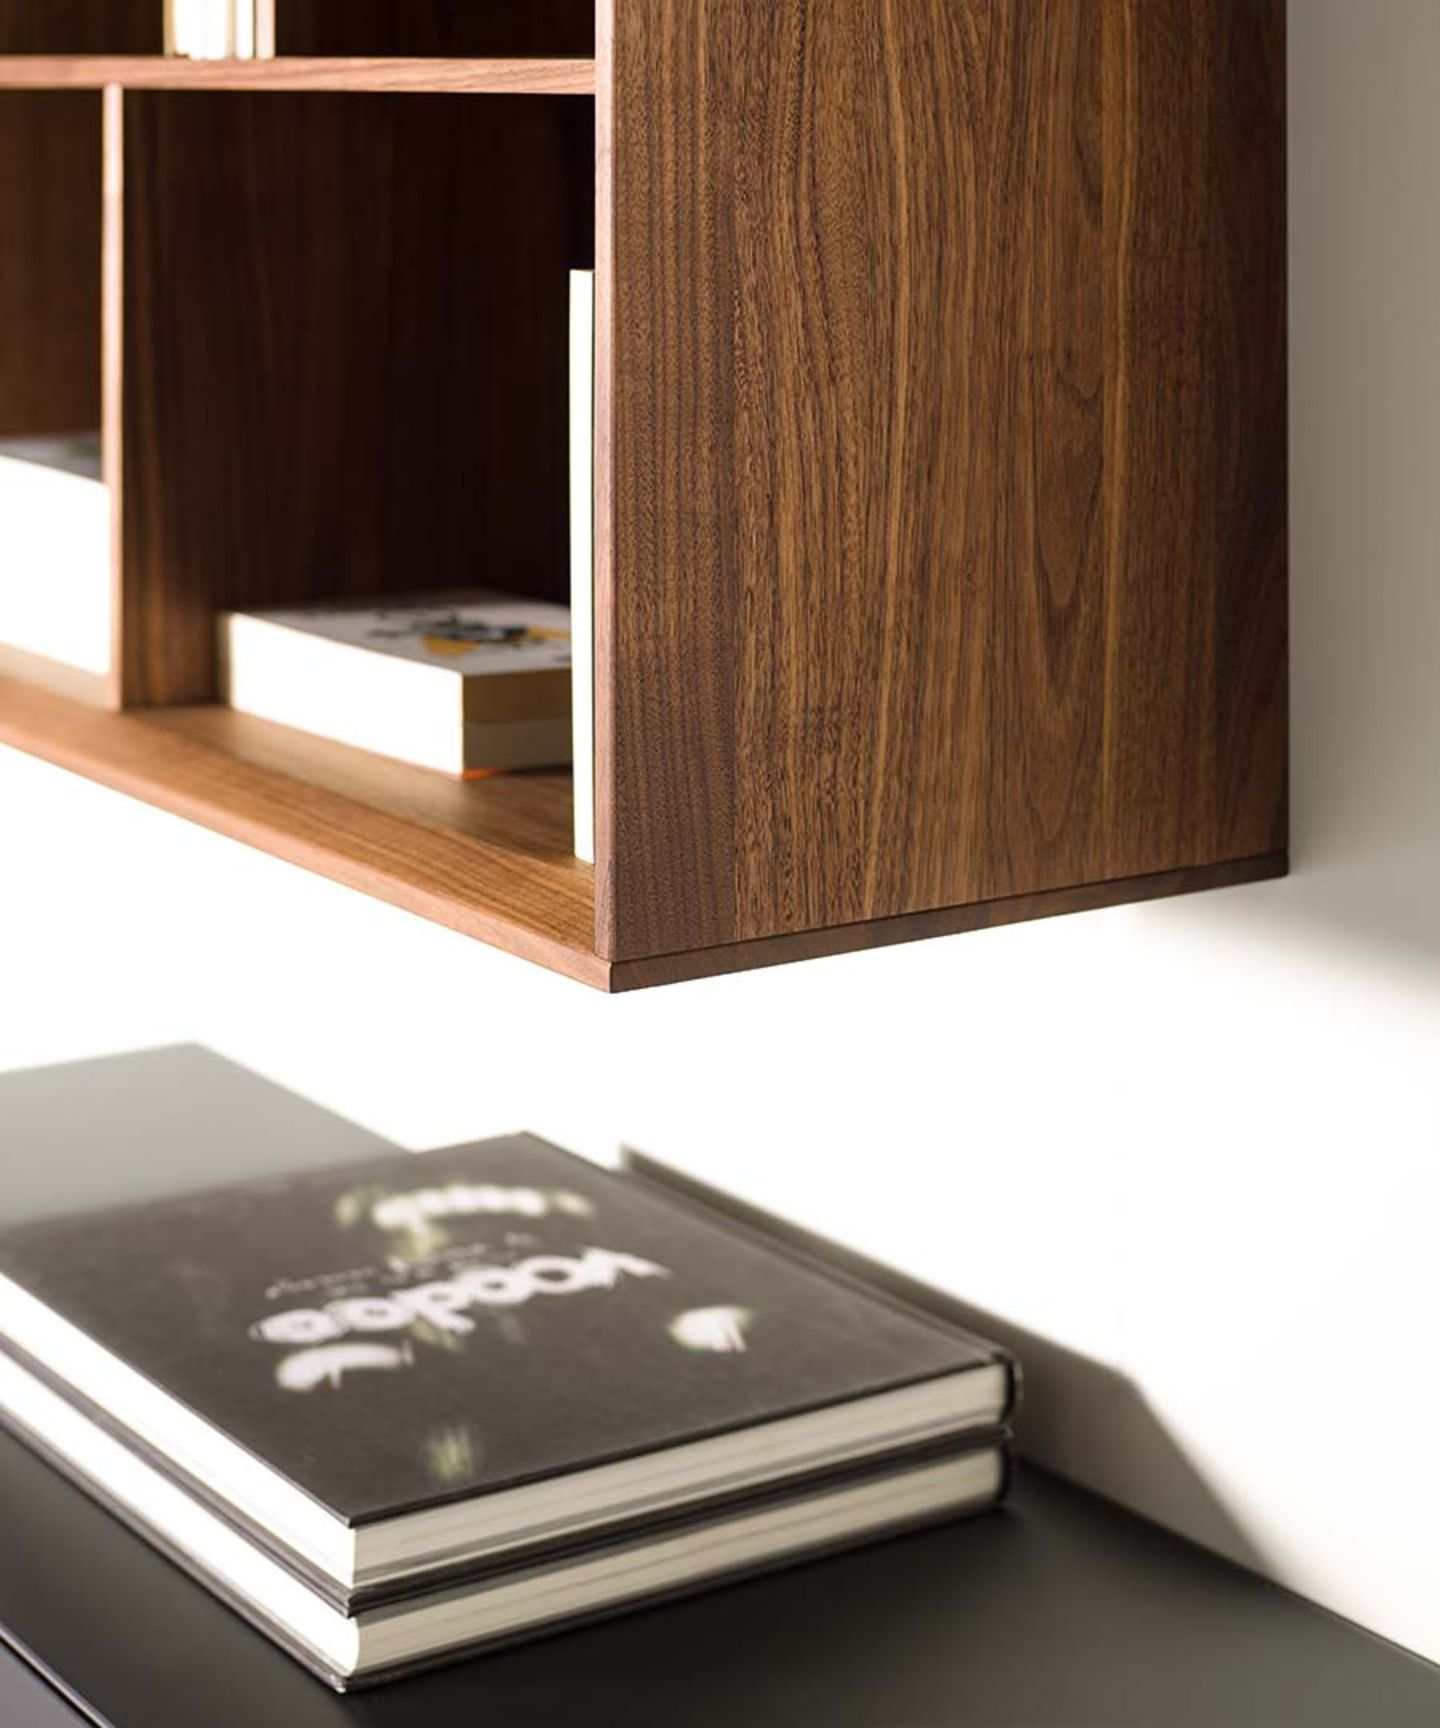 cubus pure wall unit in solid wood with detailed craftsmanship